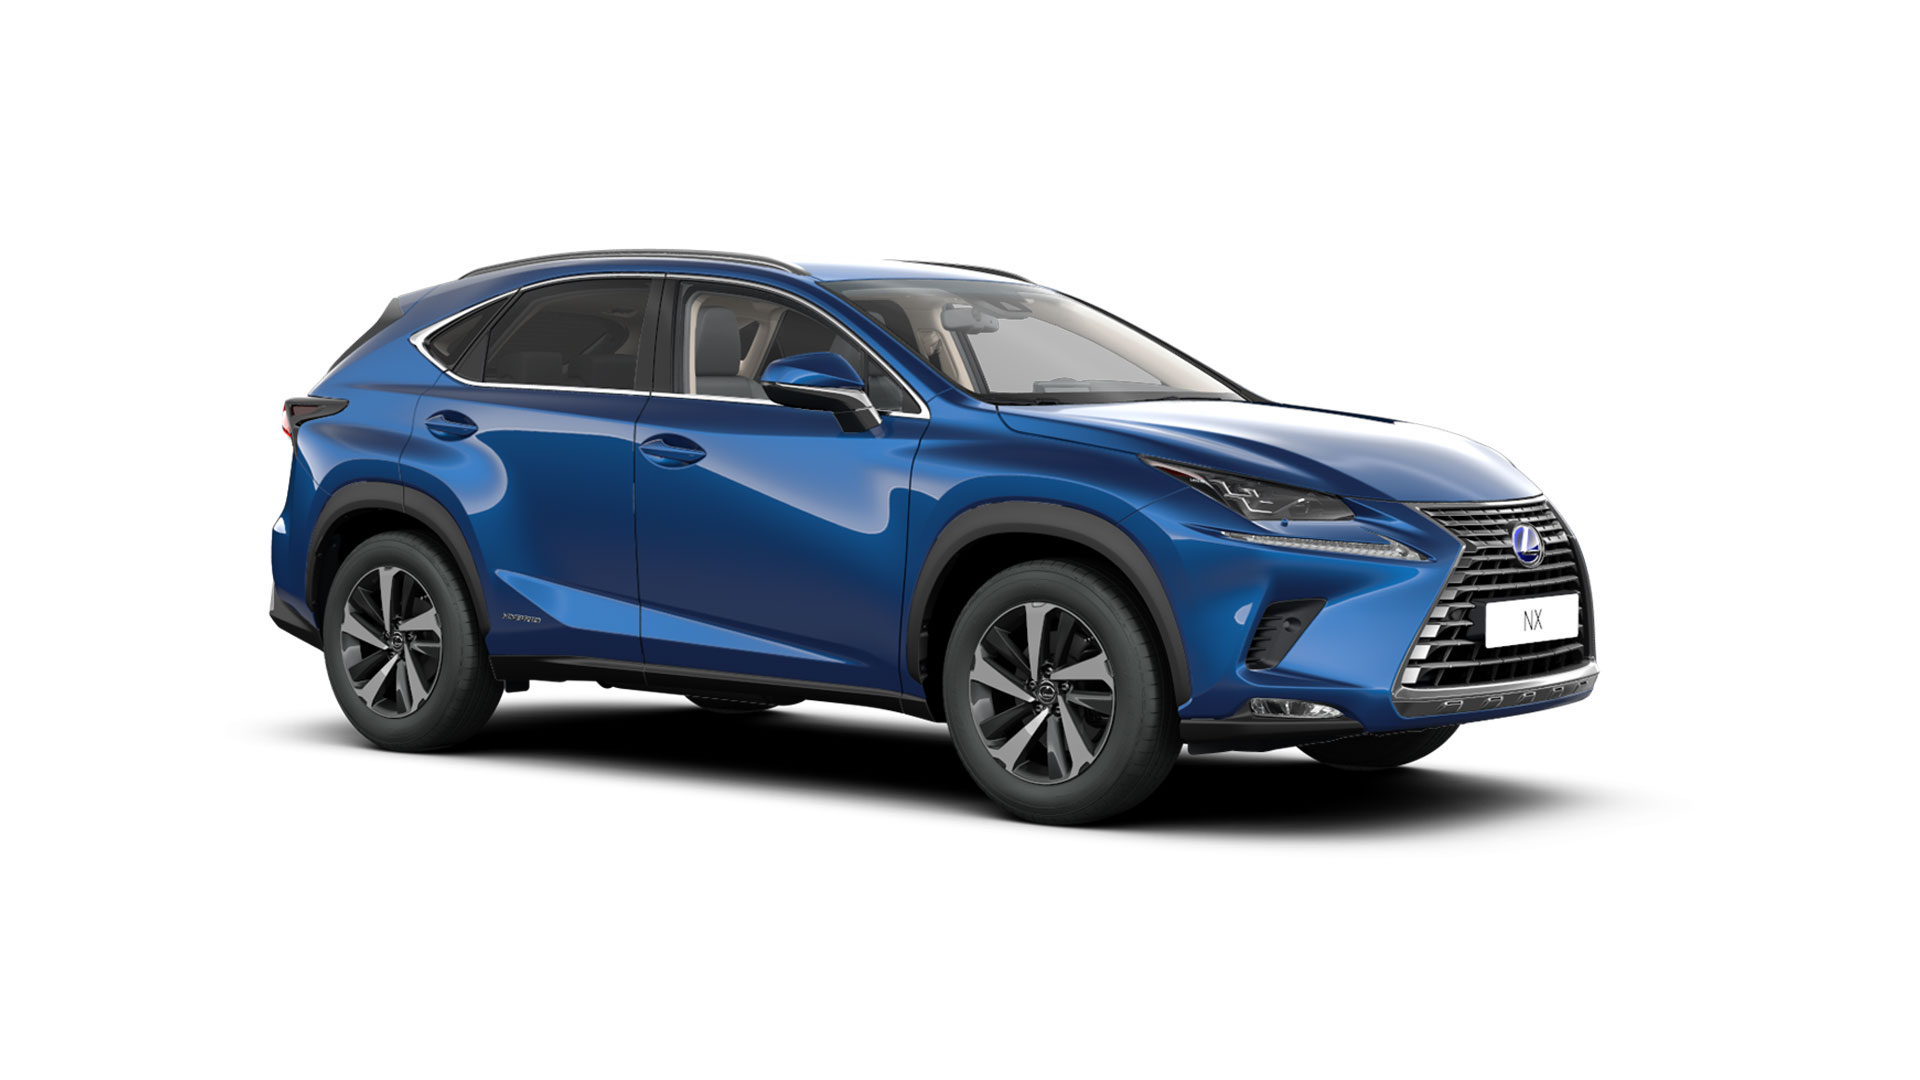 2017 lexus hybrid for business meet the nx ccis